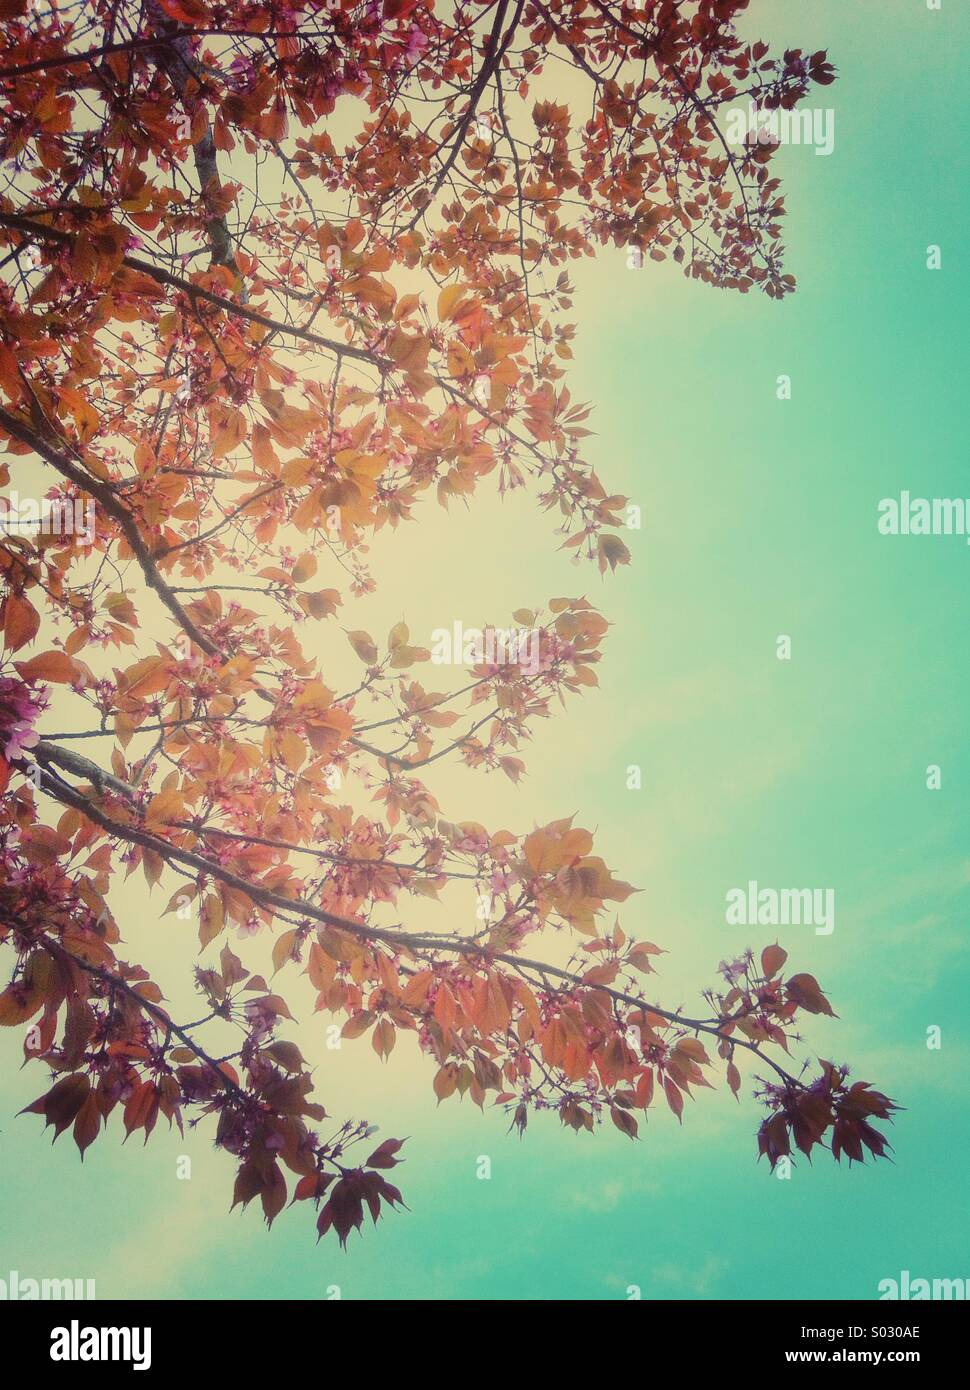 Spring flowers and leaves - Stock Image